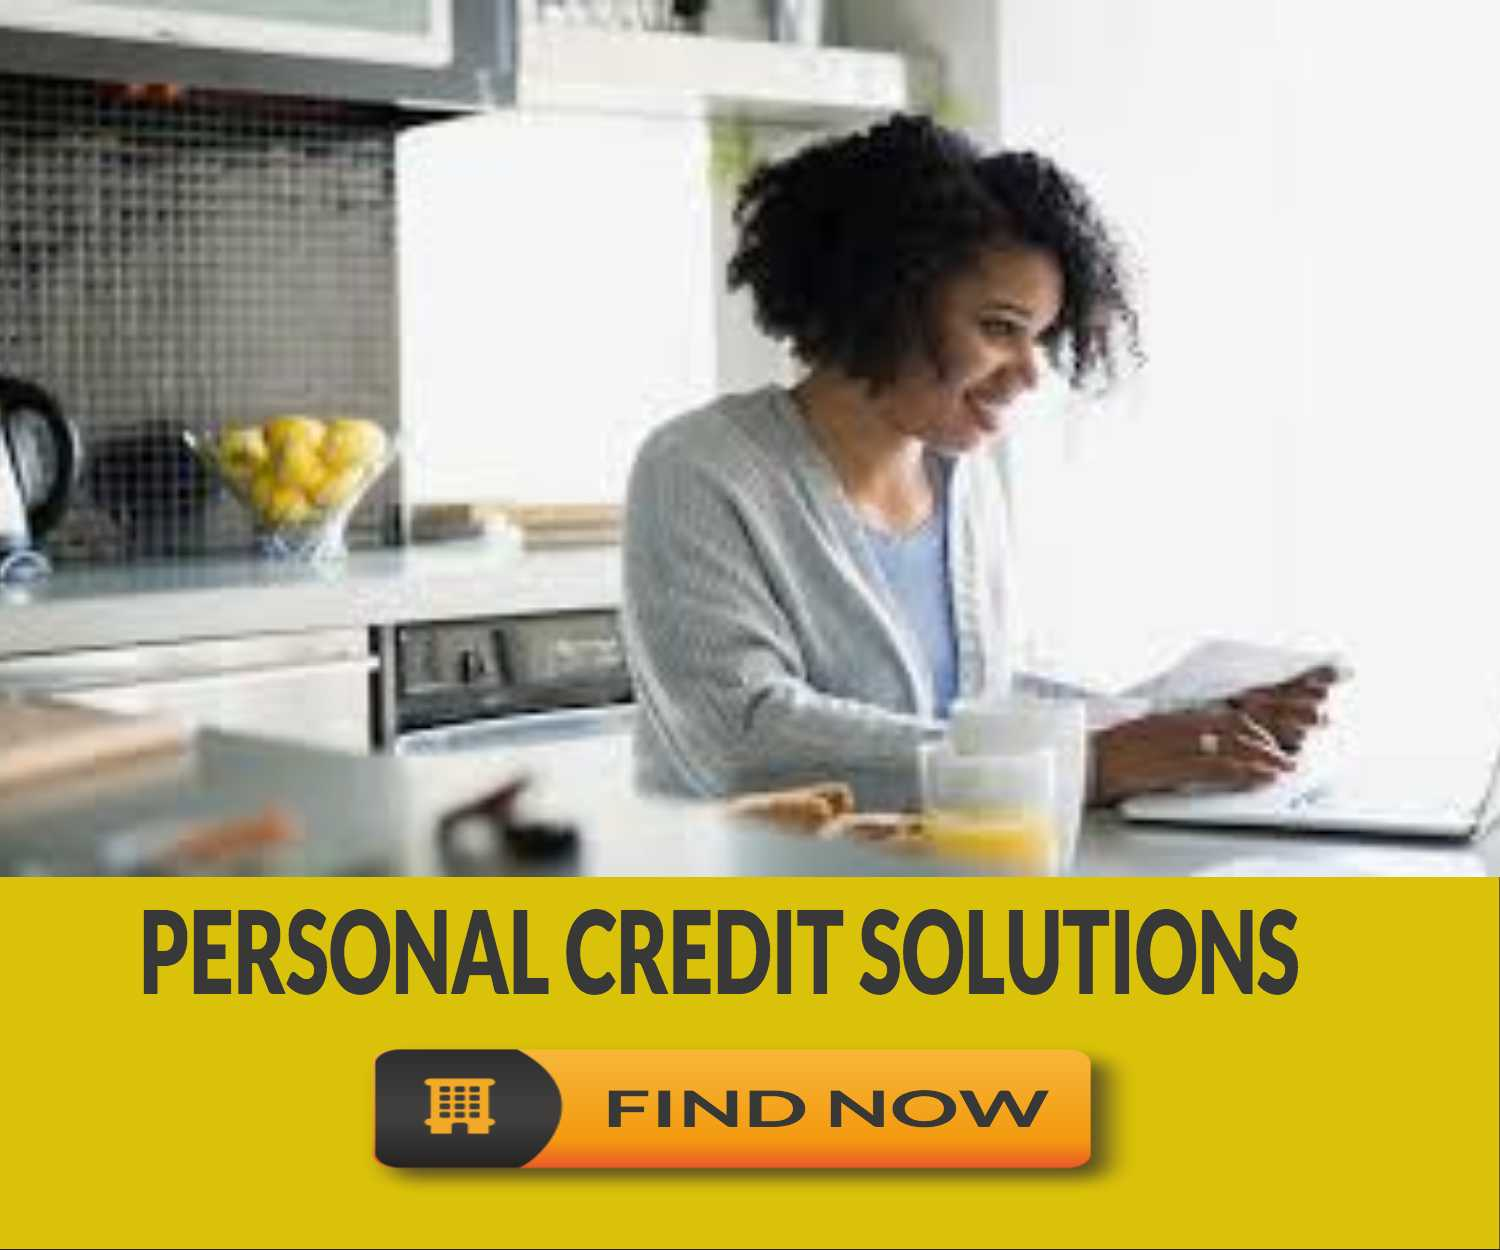 2- PERSONAL CREDIT SOLUTIONS